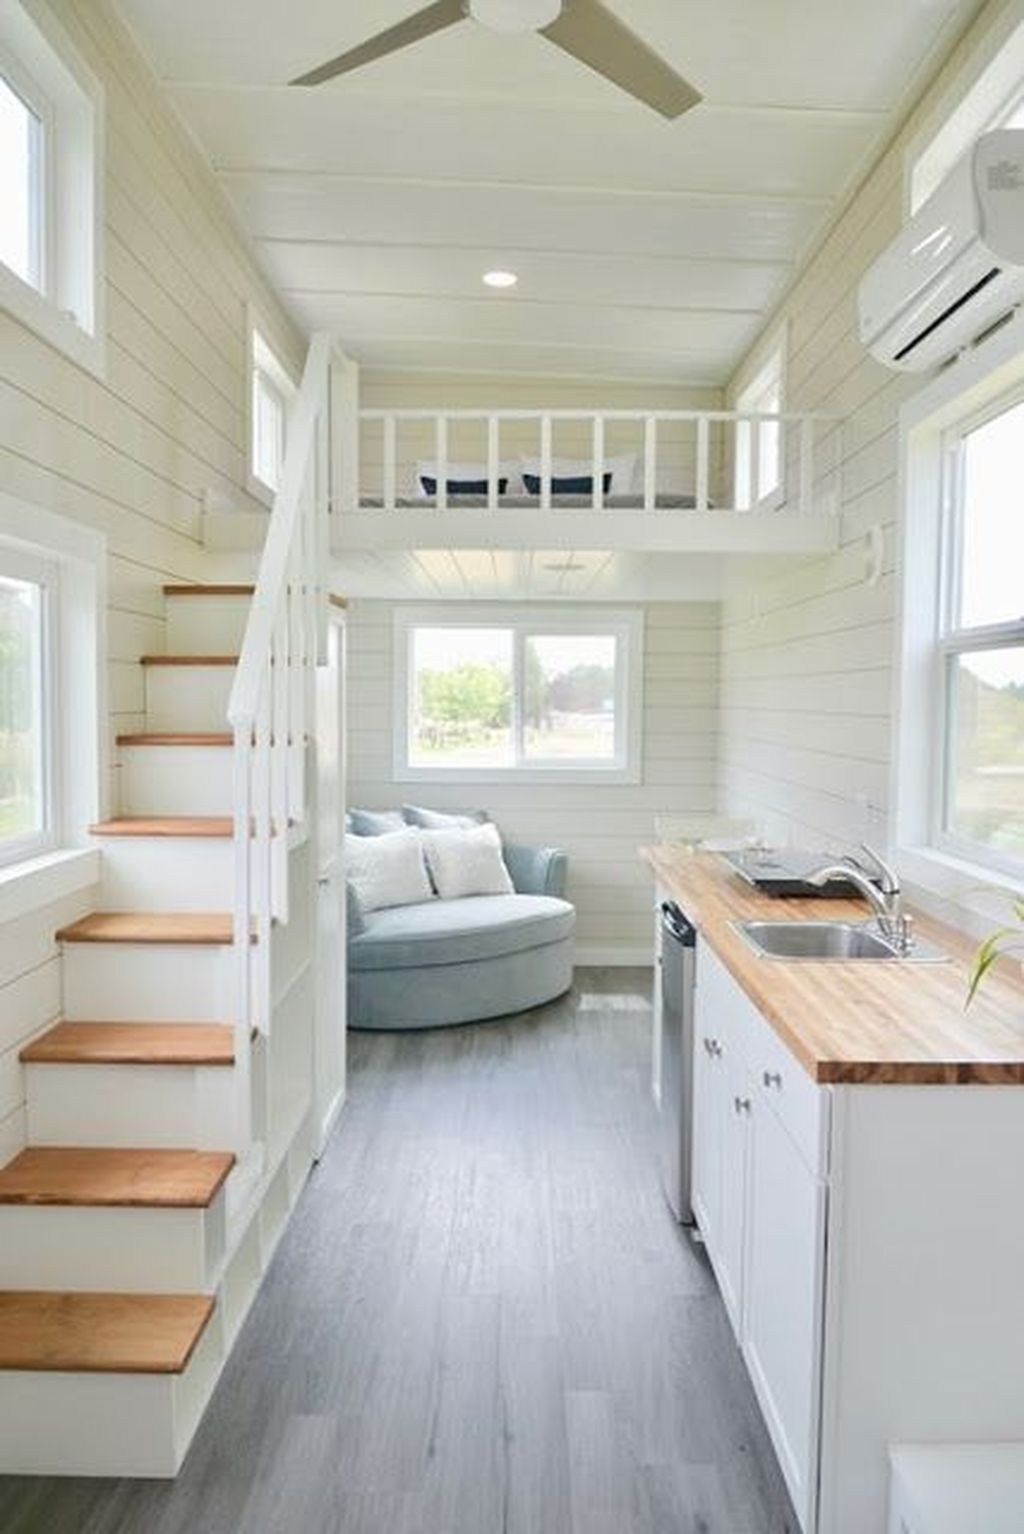 42 Awesome Tiny House Ideas Klein Huis Ontwerp Huis